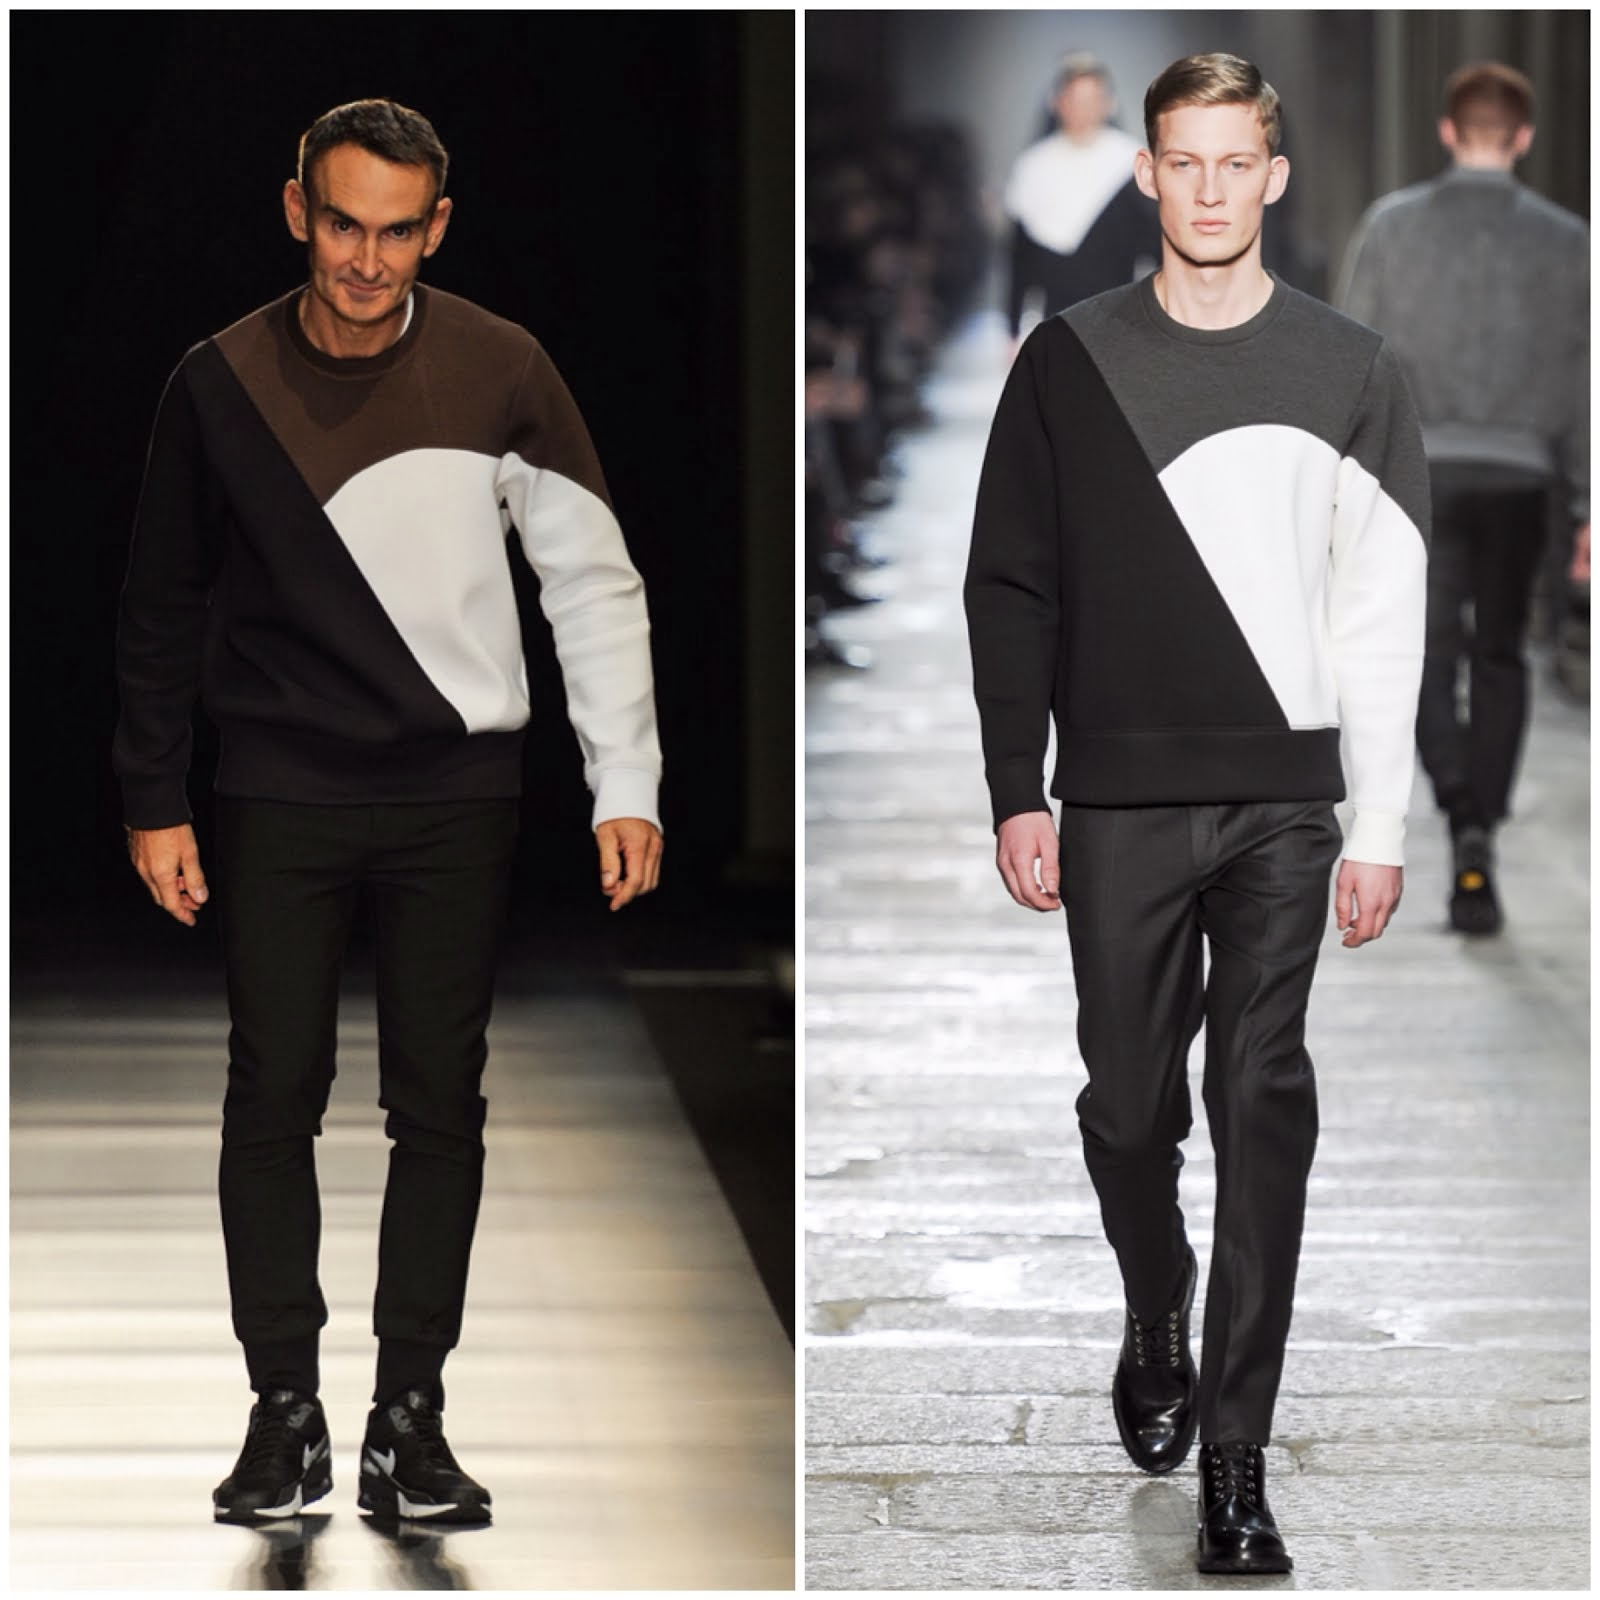 Neil Barrett in NEIL BARRETT COLOUR-BLOCK BONDED-JERSEY SWEATSHIRT - Neil Barrett Fall Winter 2014 Show, #MFW